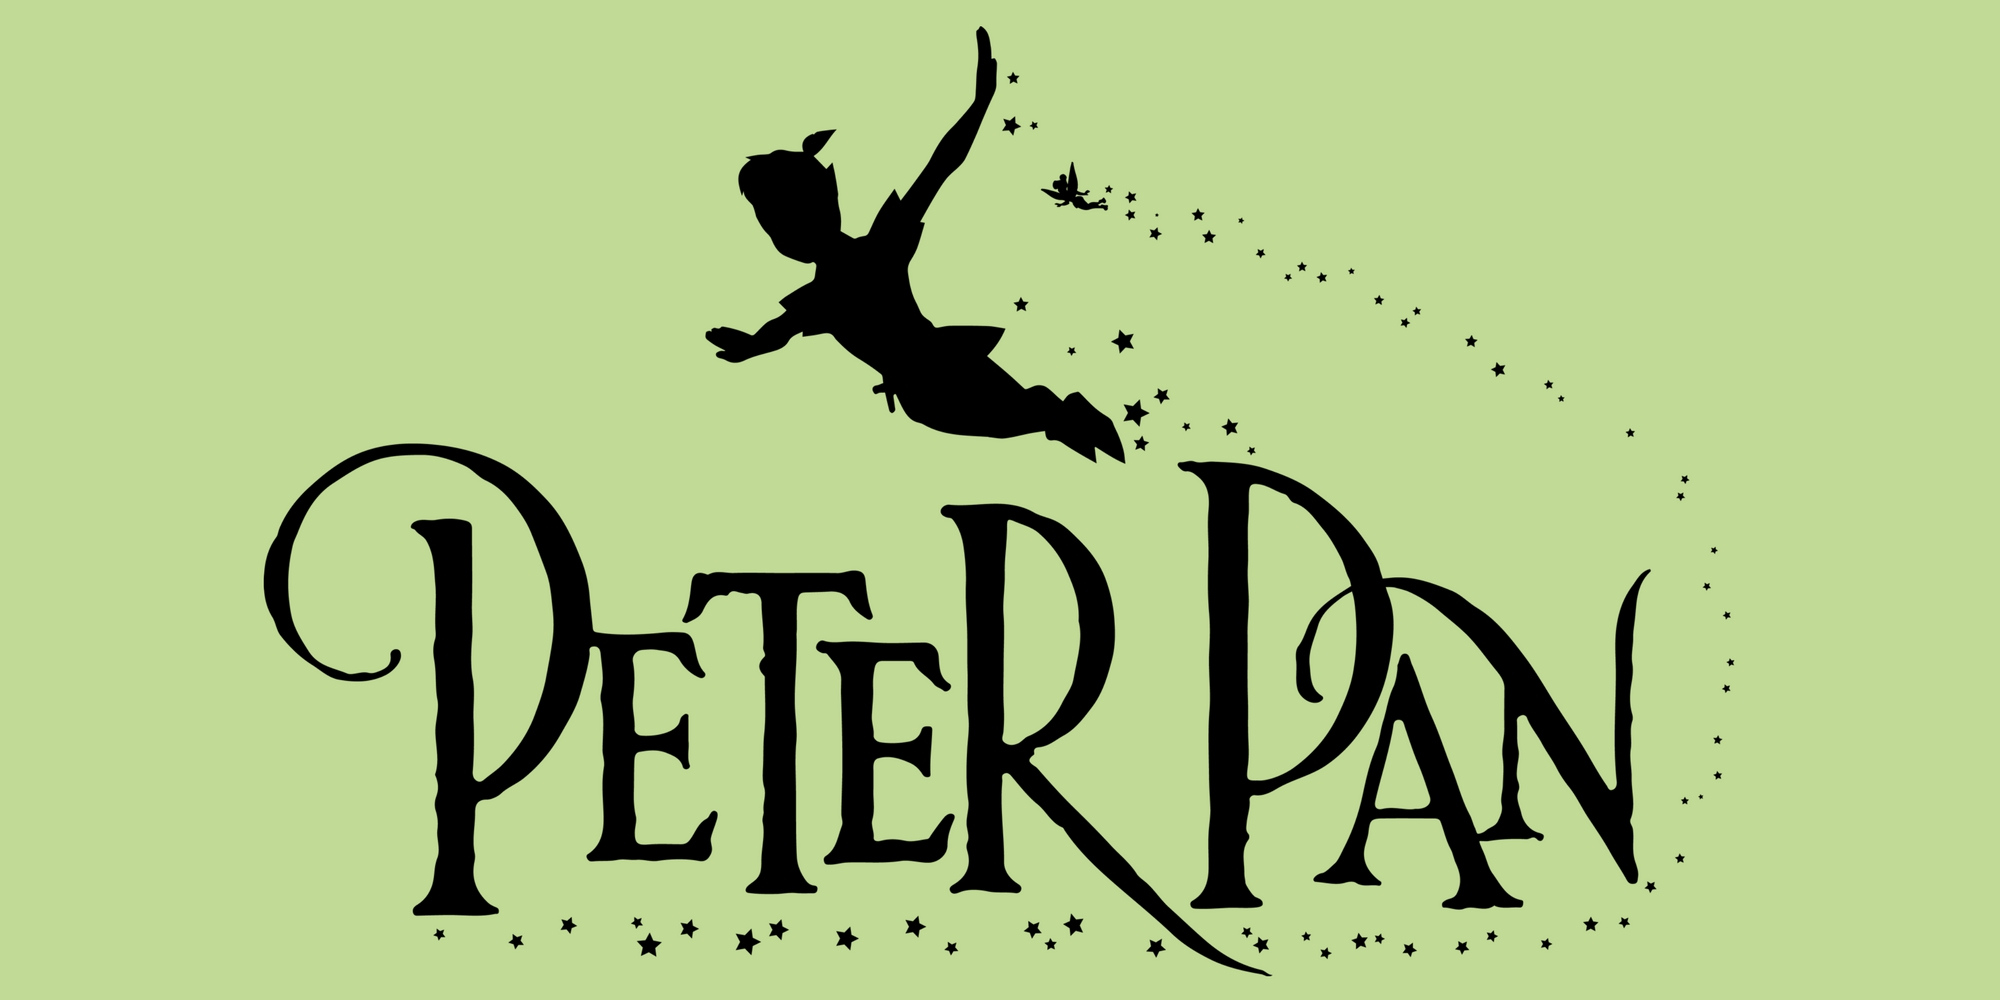 1675_peter_pan_blog.jpg